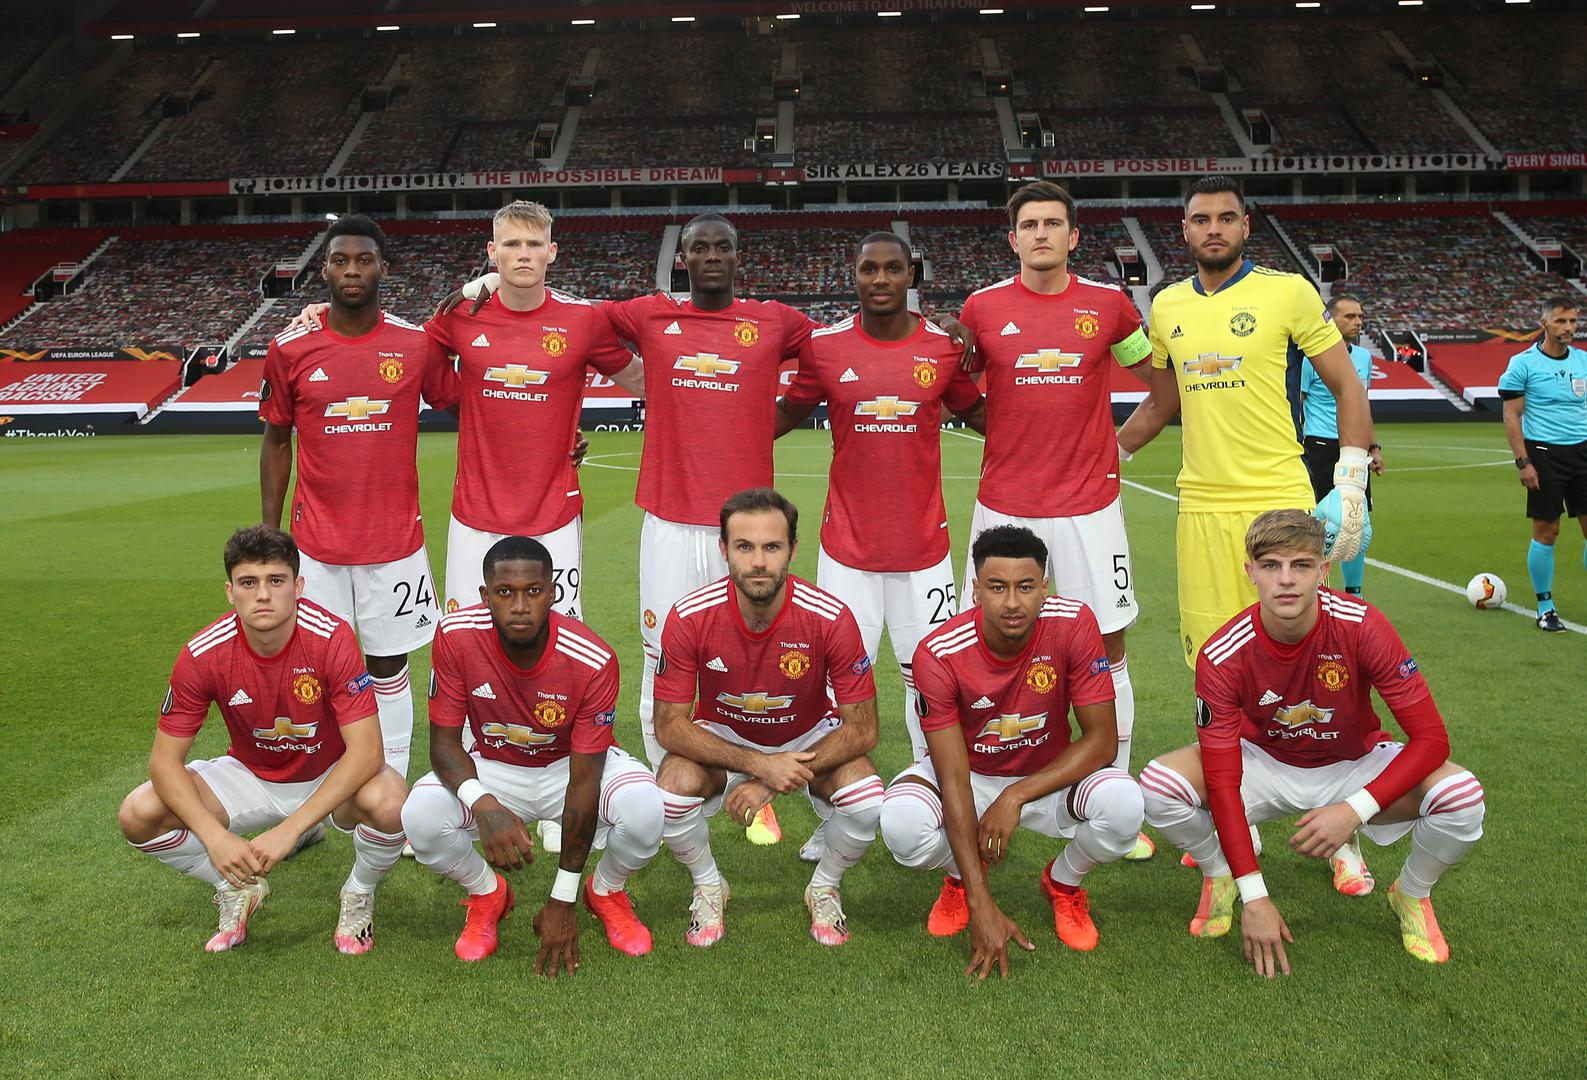 United pose for a squad pic..